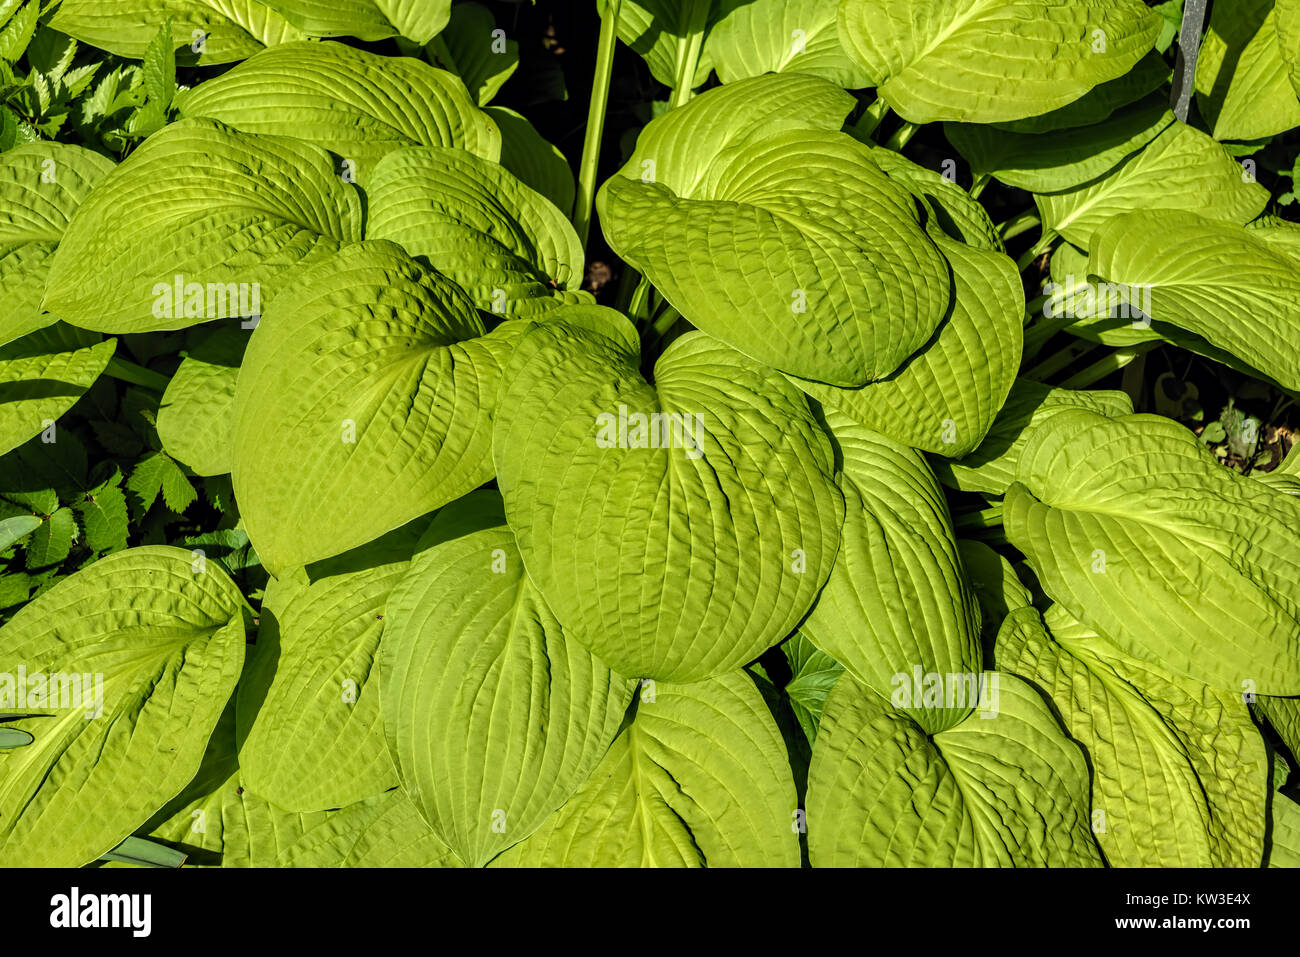 Closeup of wide green veined leaves - Stock Image